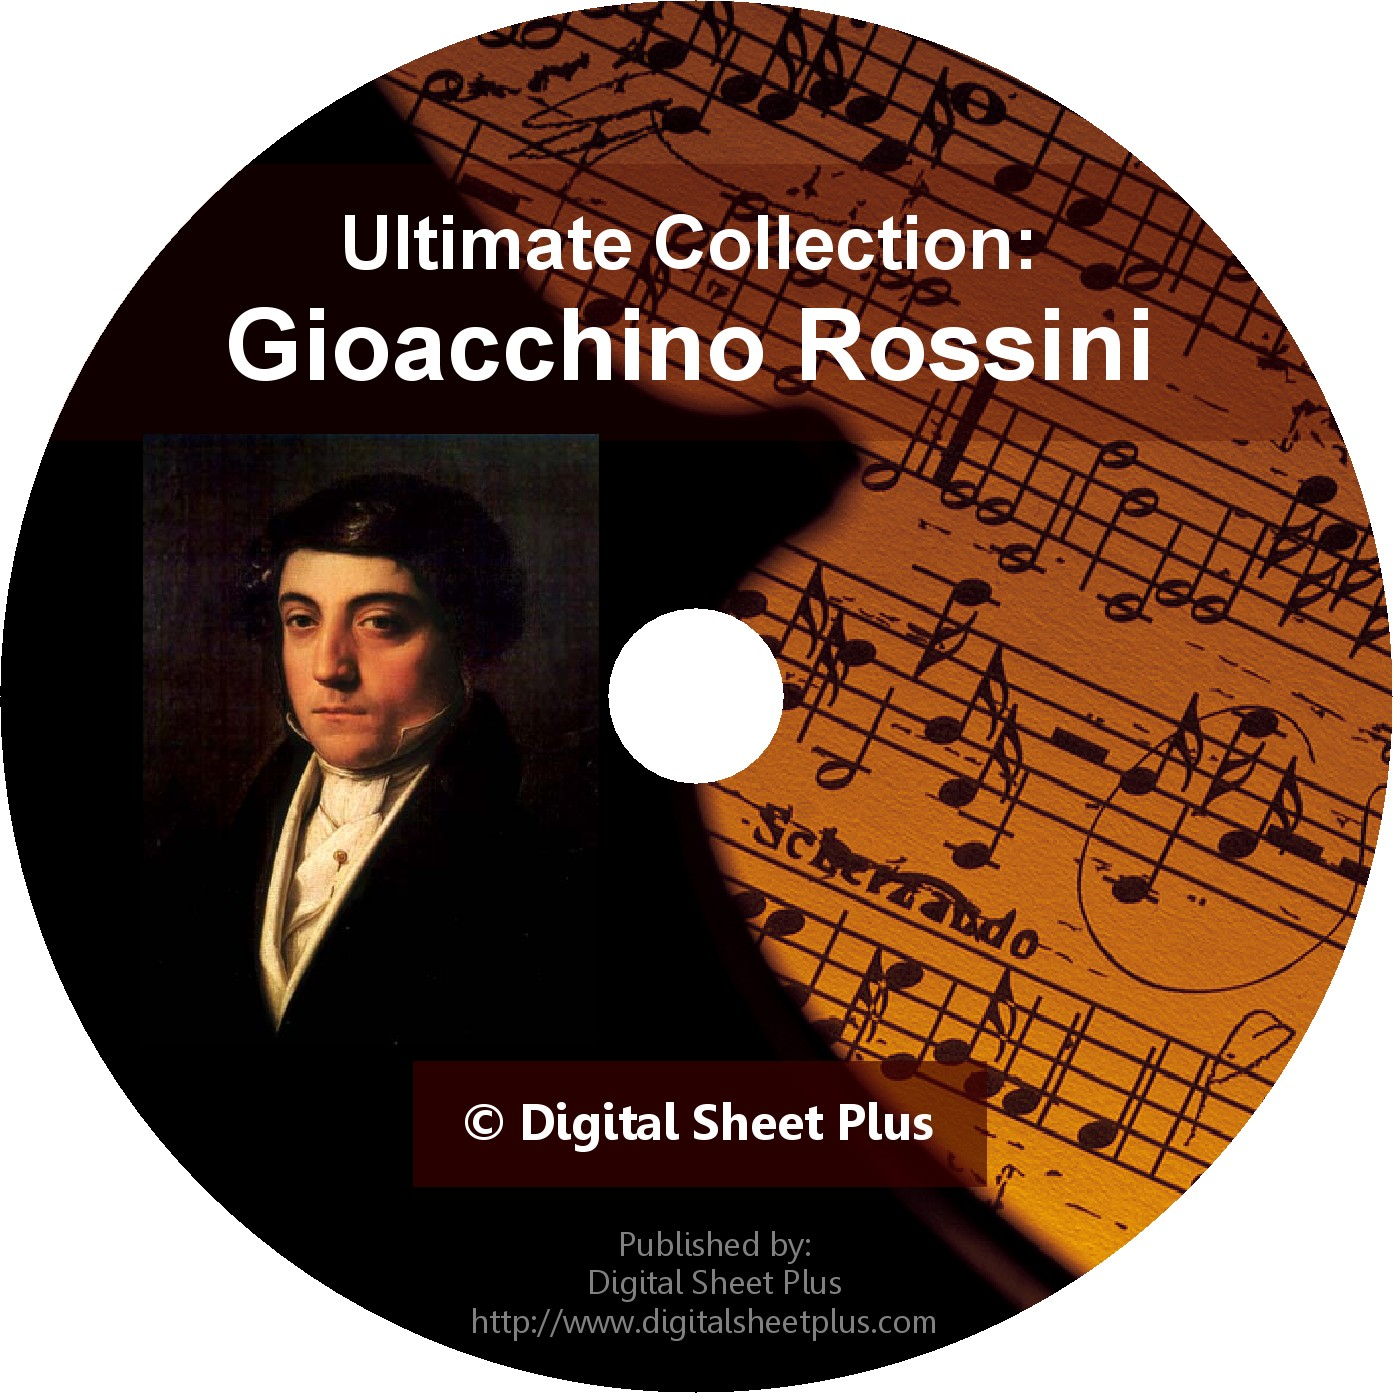 Gioacchino_Rossini_cd_cover.jpg